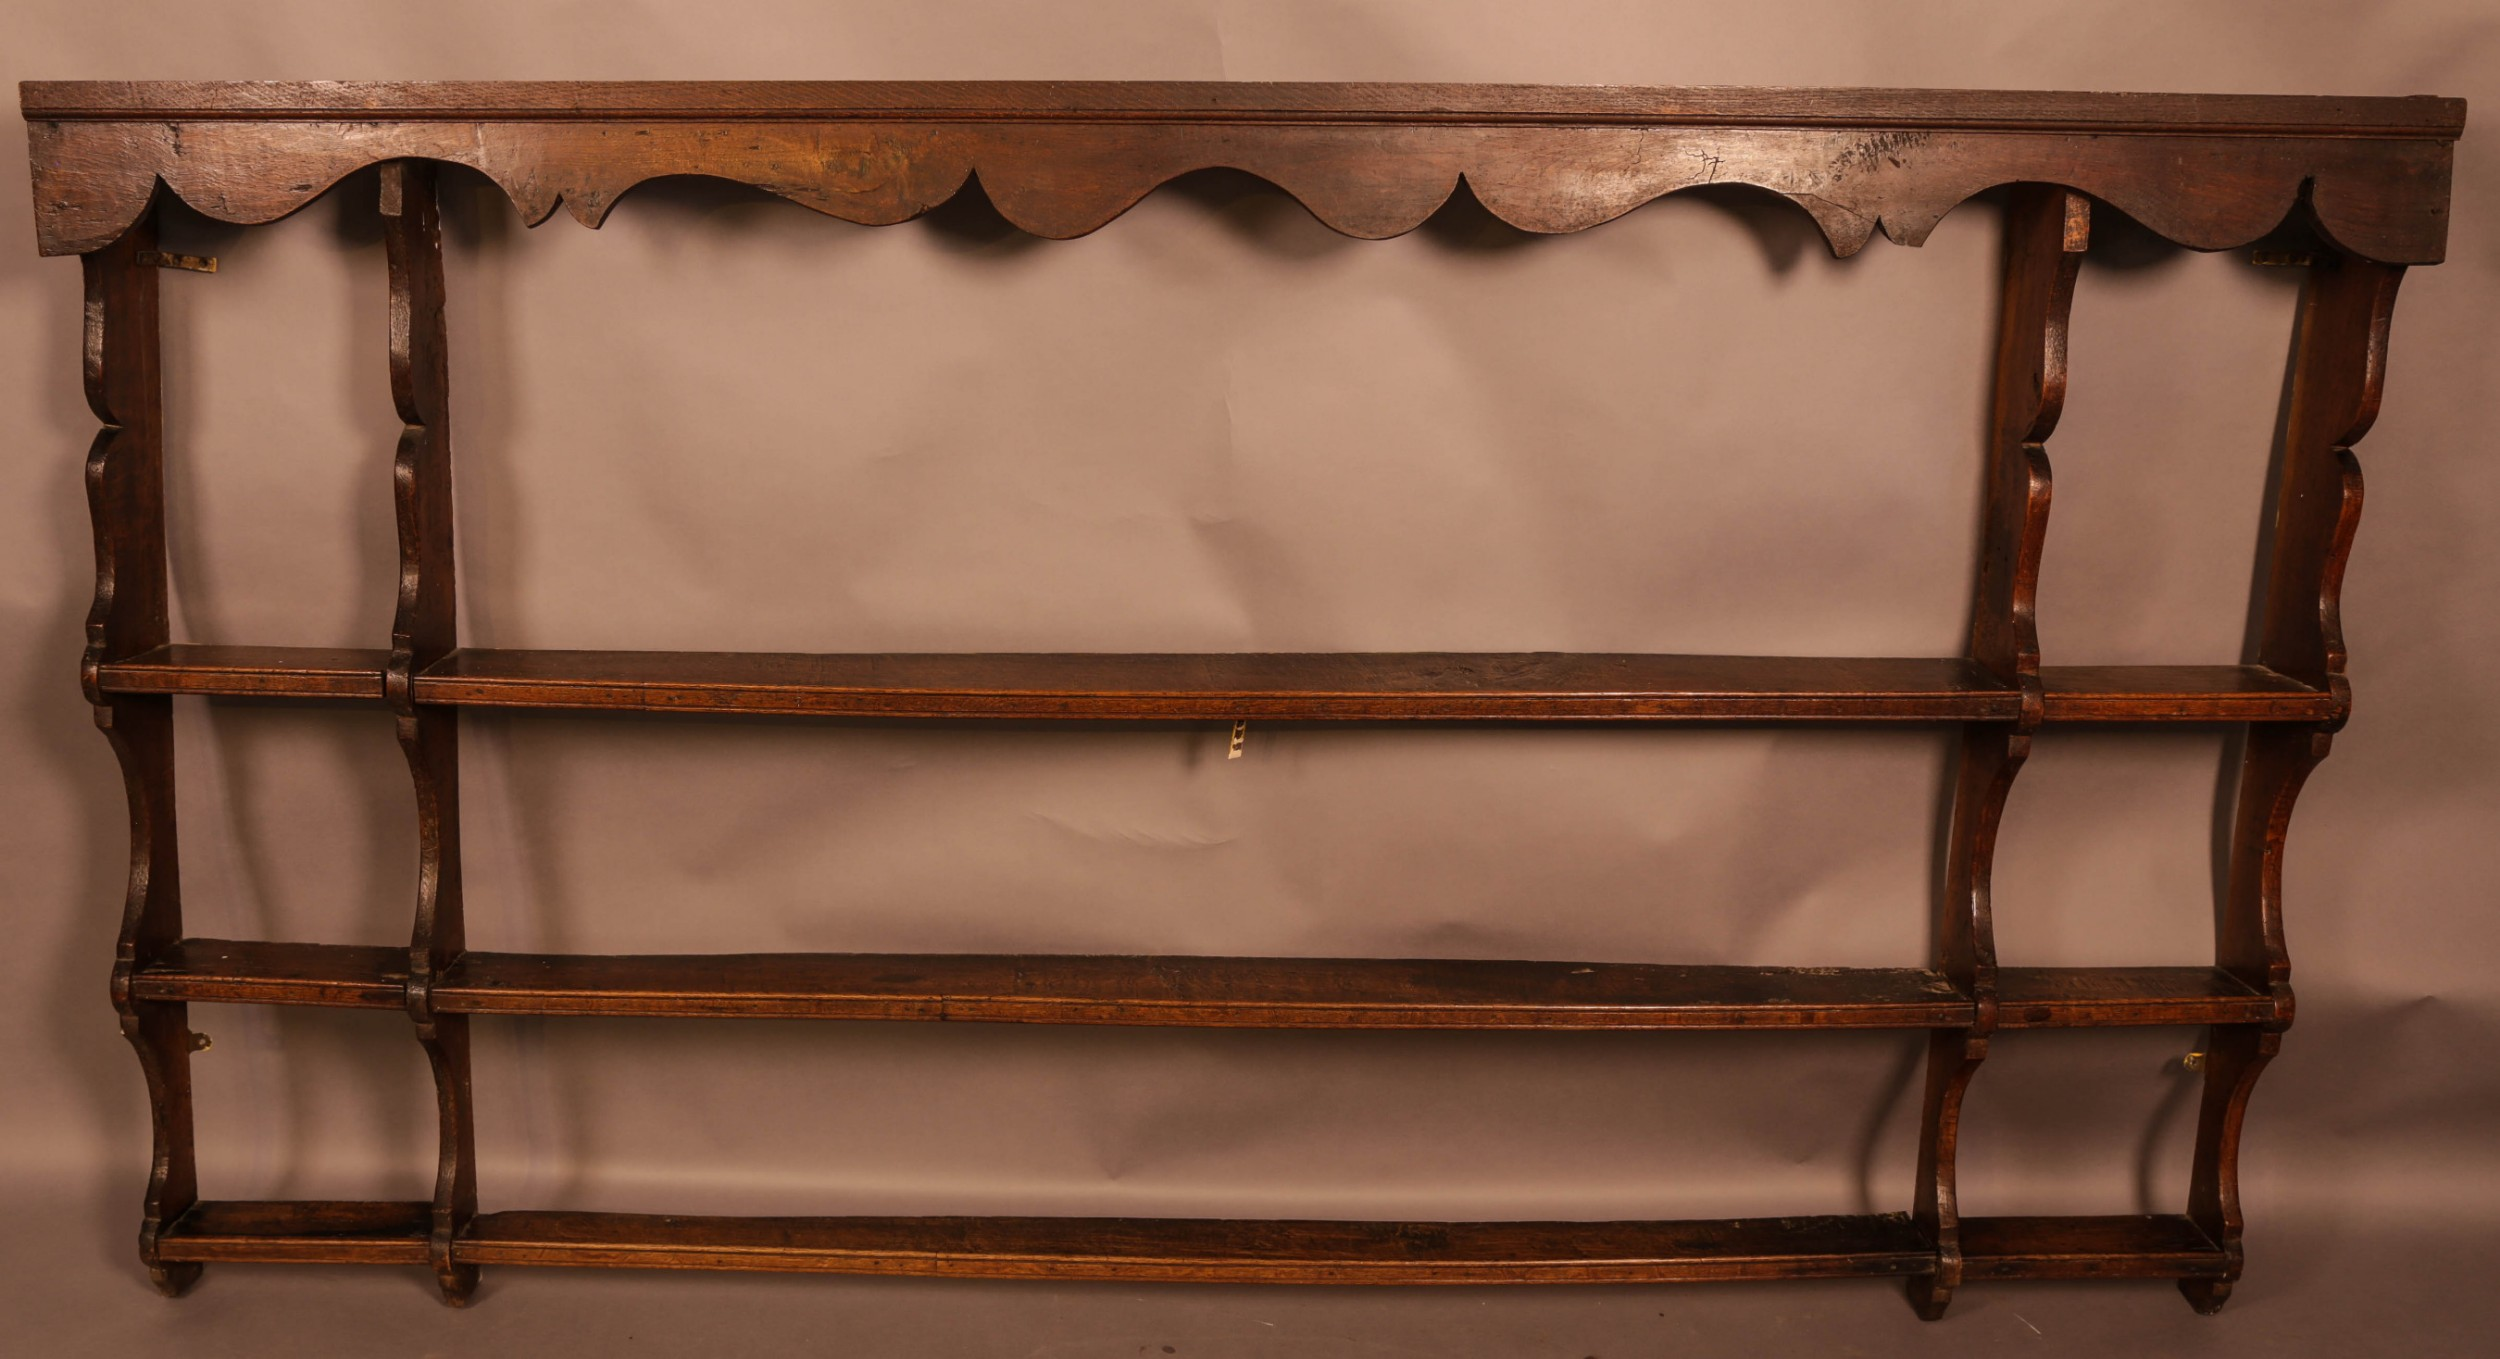 a large 18th century plate rack in oak